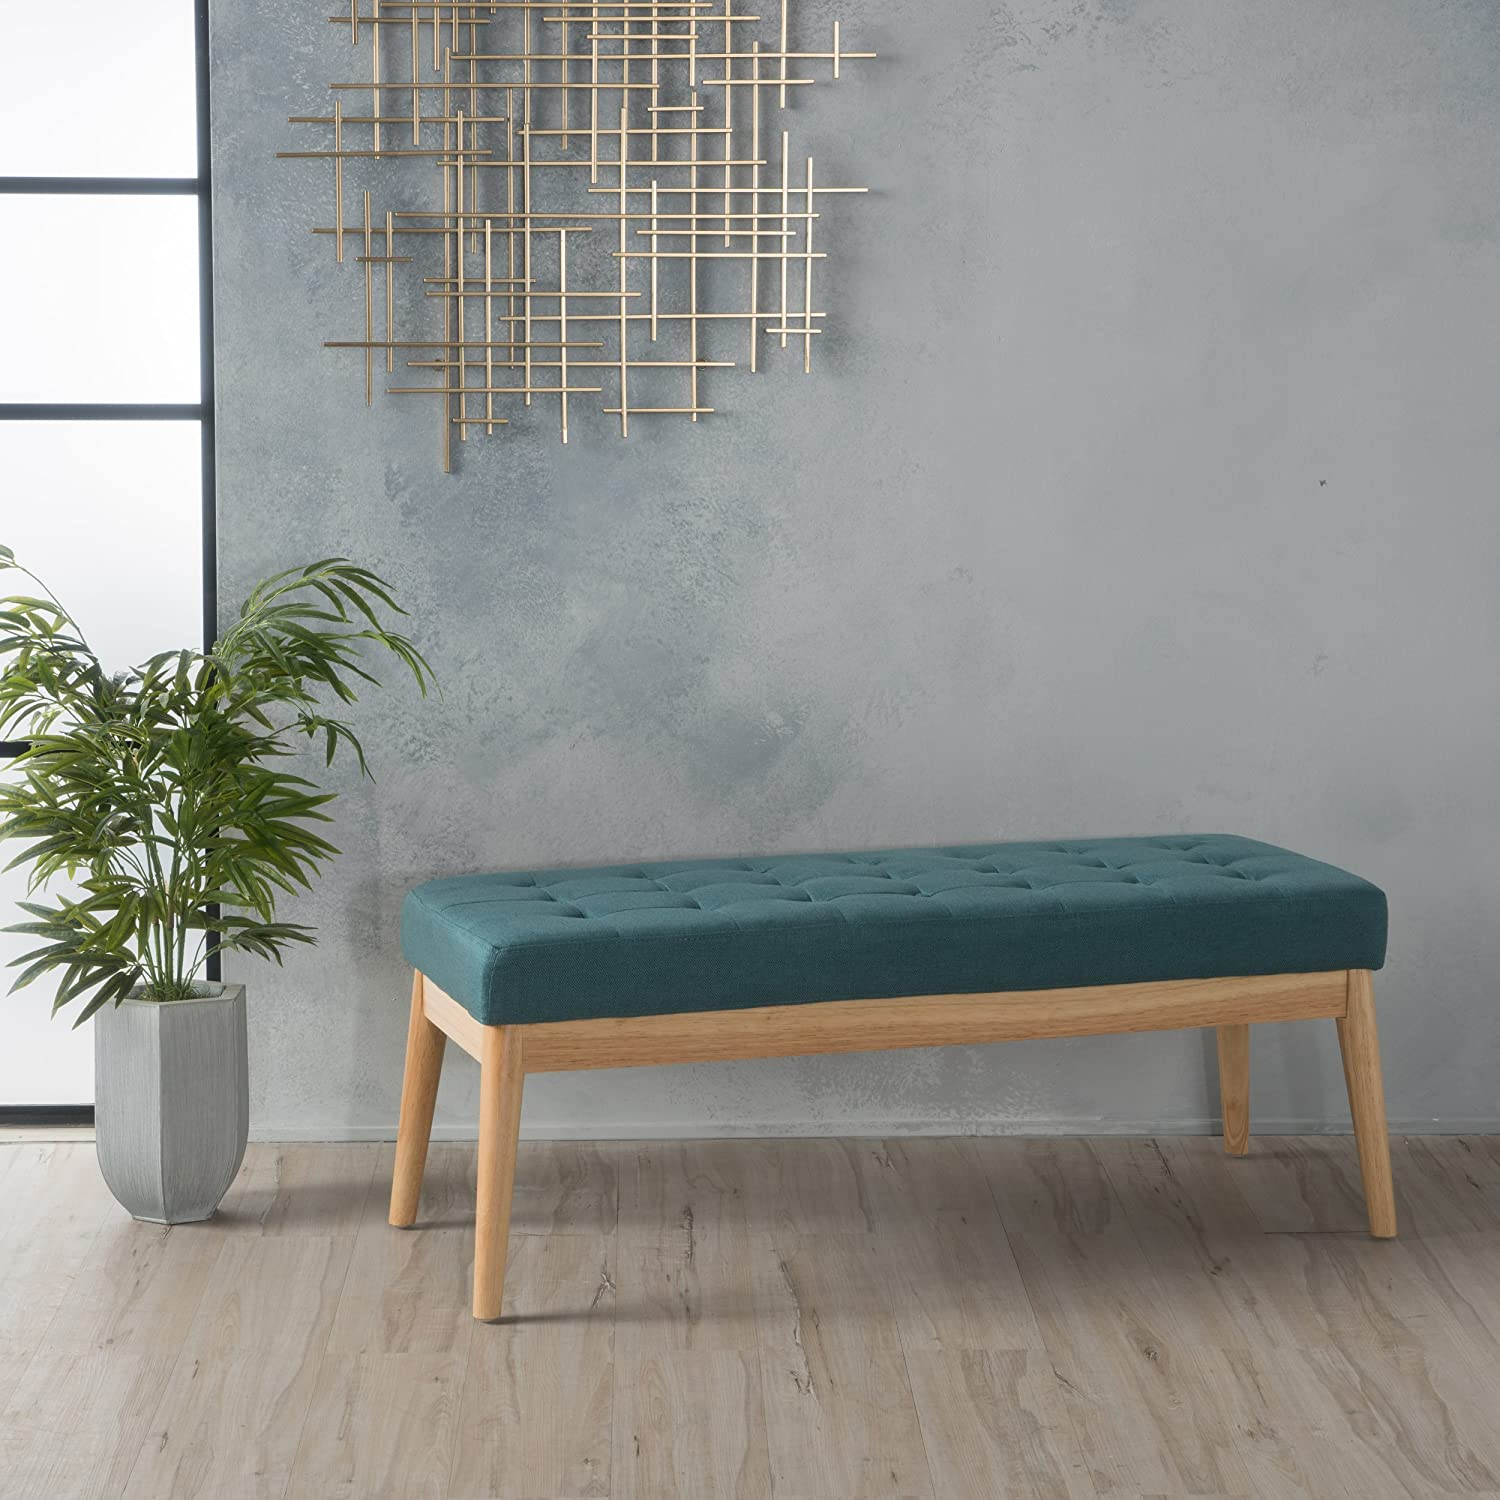 Christopher Knight Home 300219 Living Anglo Deep Teal Fabric Bench, Dark